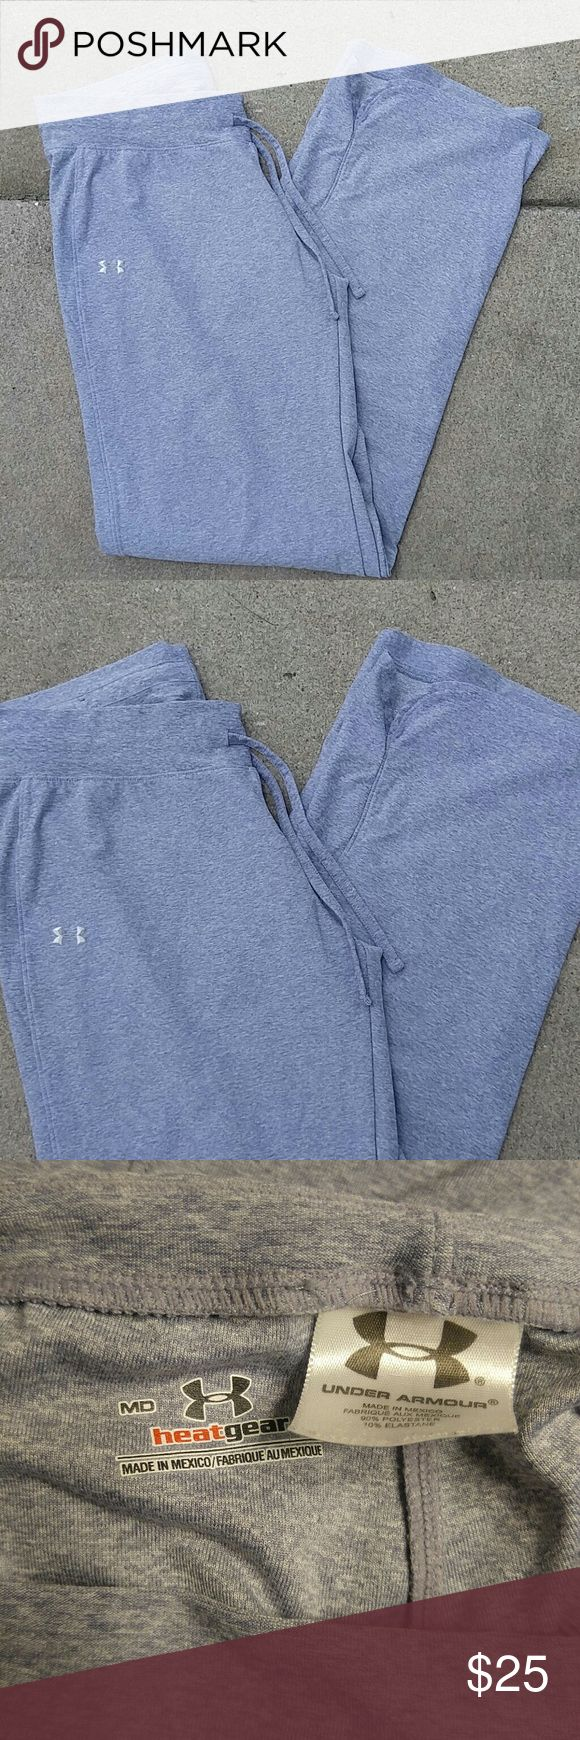 Blue gray Under Armour Athletic Pants size medium Perfect condition in a heathered blueish gray athletic pants by Under Armour in size Medium Under Armour Pants Track Pants & Joggers